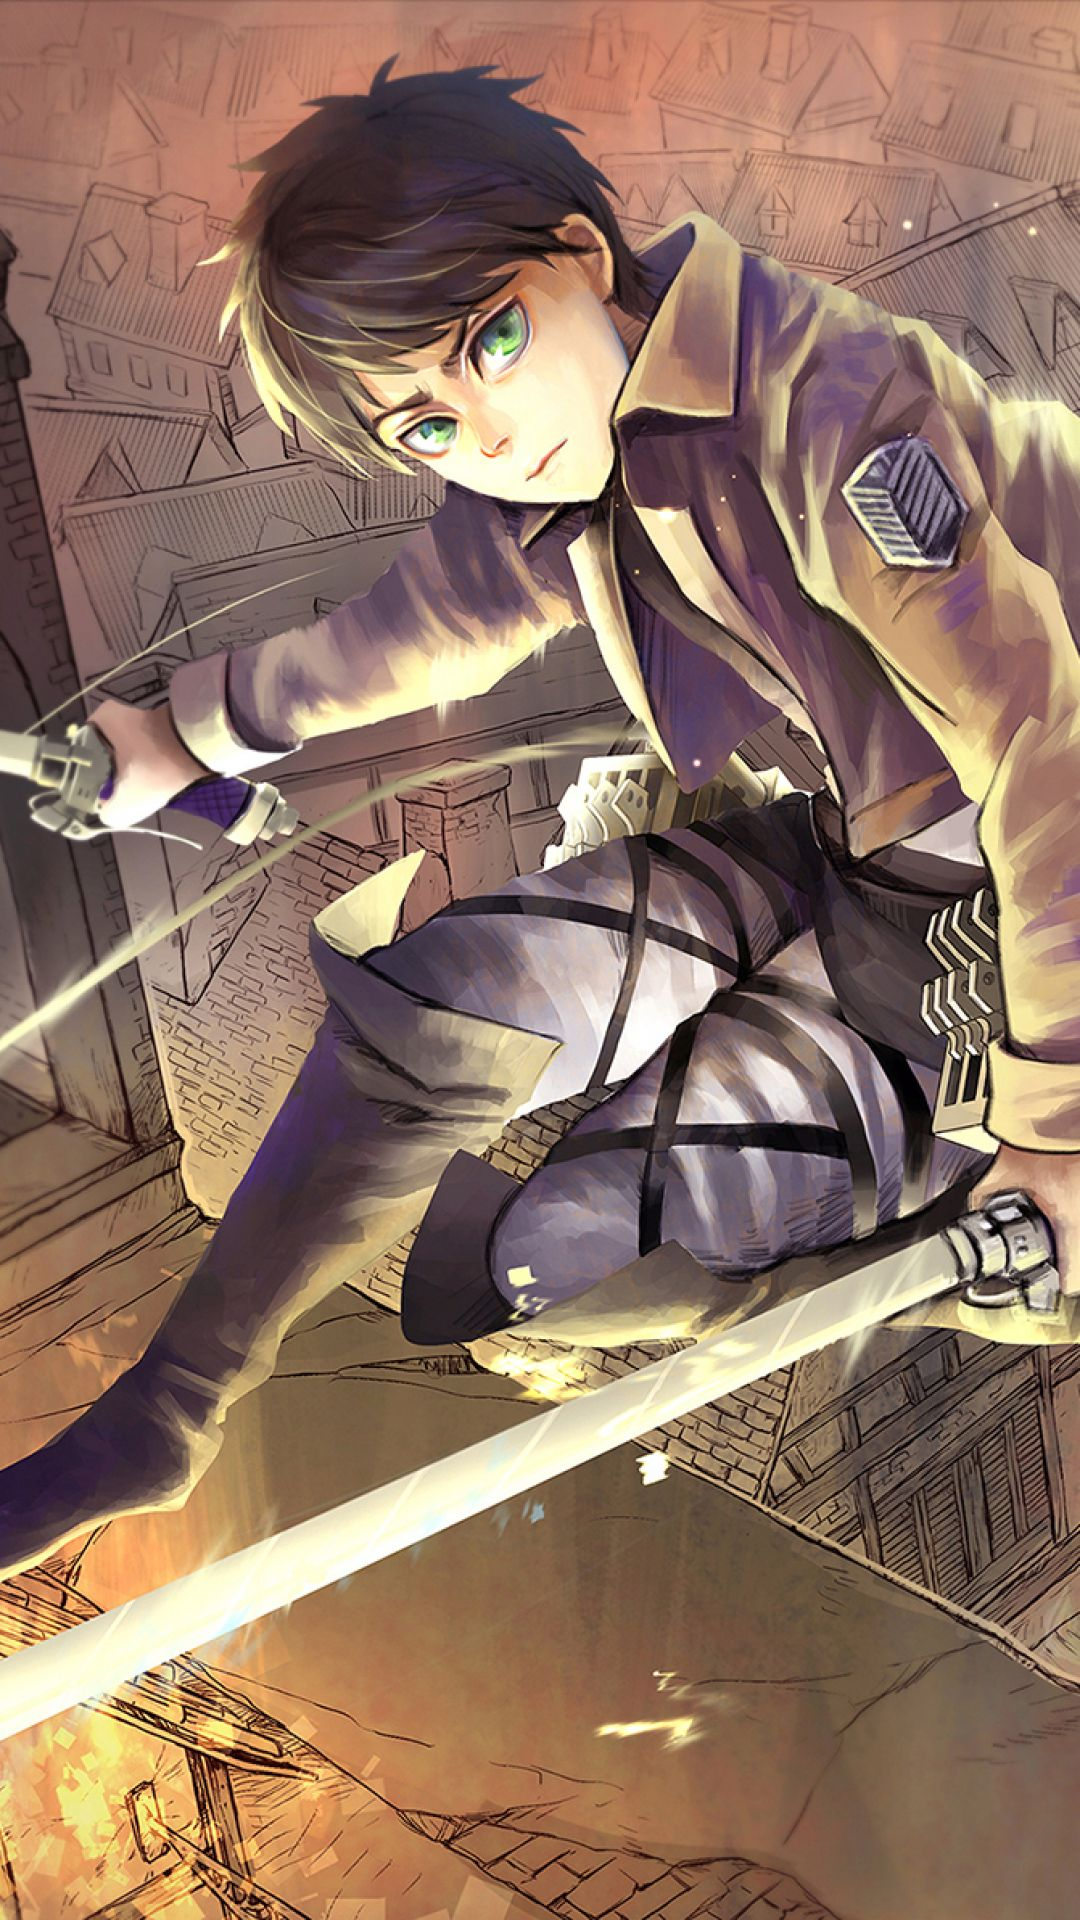 By lkoizumil 17+ eren yeager attack on titan wallpapers hd. 34 Attack on Titan iPhone Wallpapers - WallpaperBoat